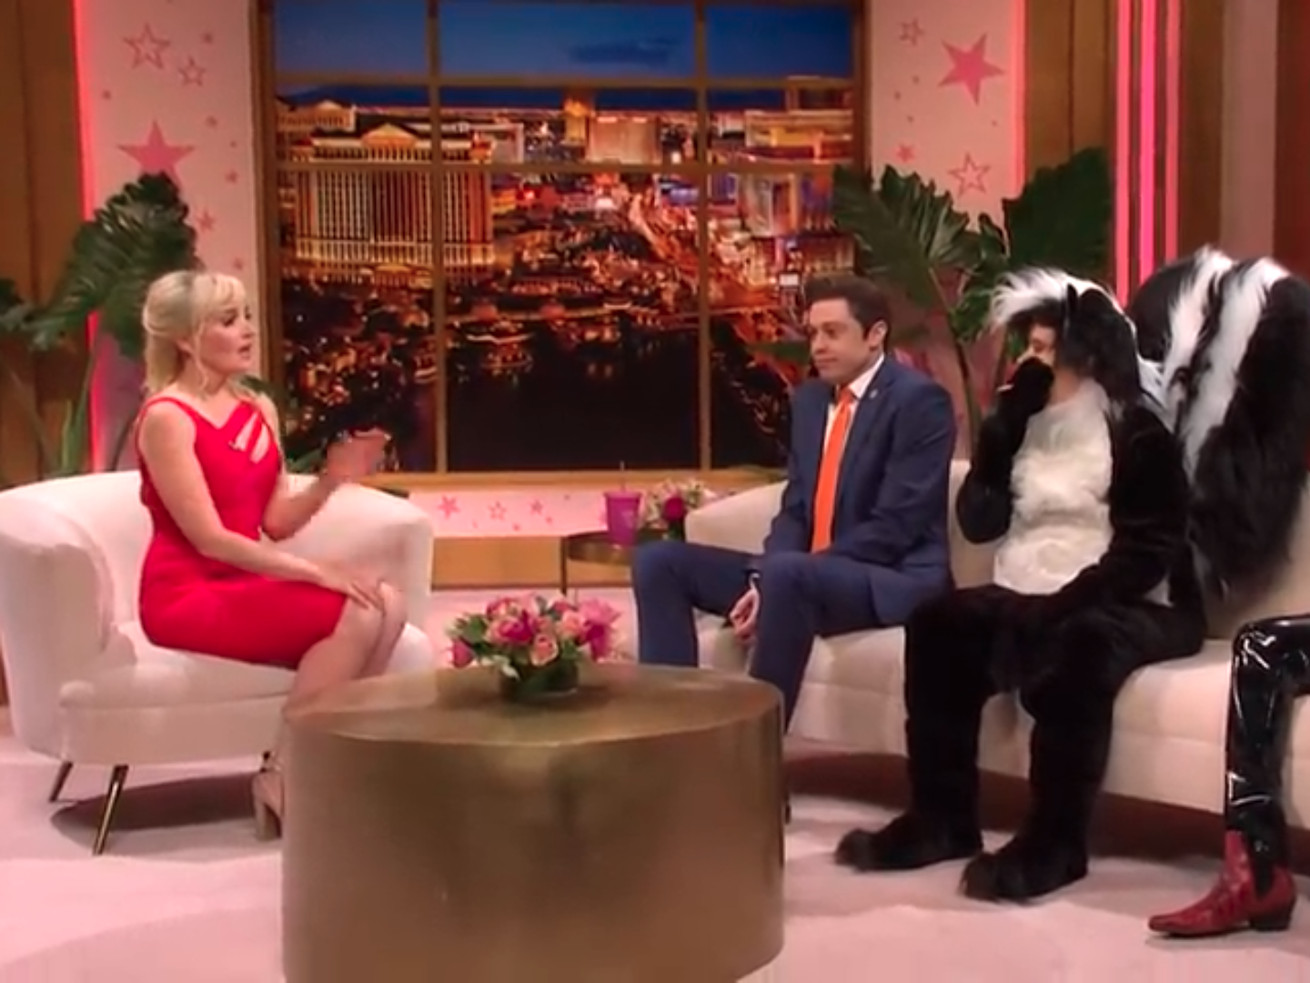 Photo shows the Saturday Night Live cold open segment Oops, You Did It Again featuring Pete Davidson as Rep. Matt Gaetz, Chloe Fineman as Britney Spears, Chris Redd as Lil Nas X, and Kate McKinnon, wearing a skunk suit, as Pepé Le Pew. They are seated on a couch and are acting in a mock talk show.